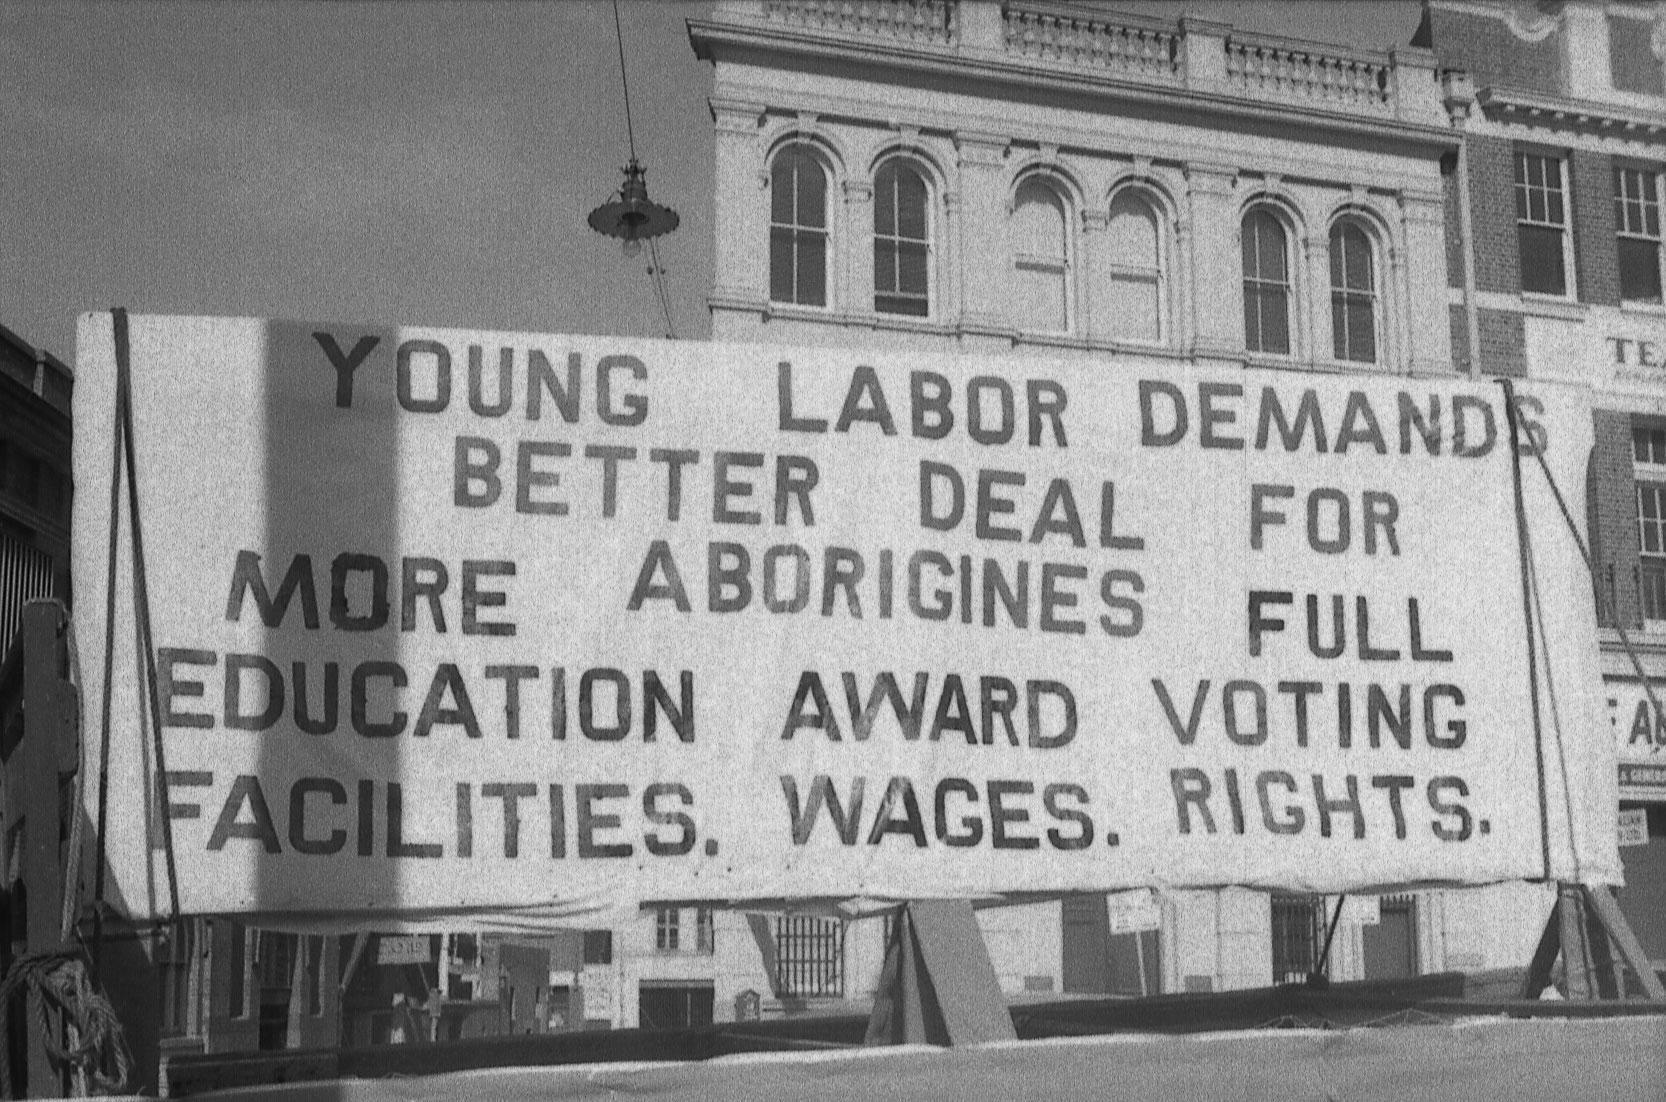 <p>Young Labor banner on Aboriginal rights, May Day procession, 1965</p>